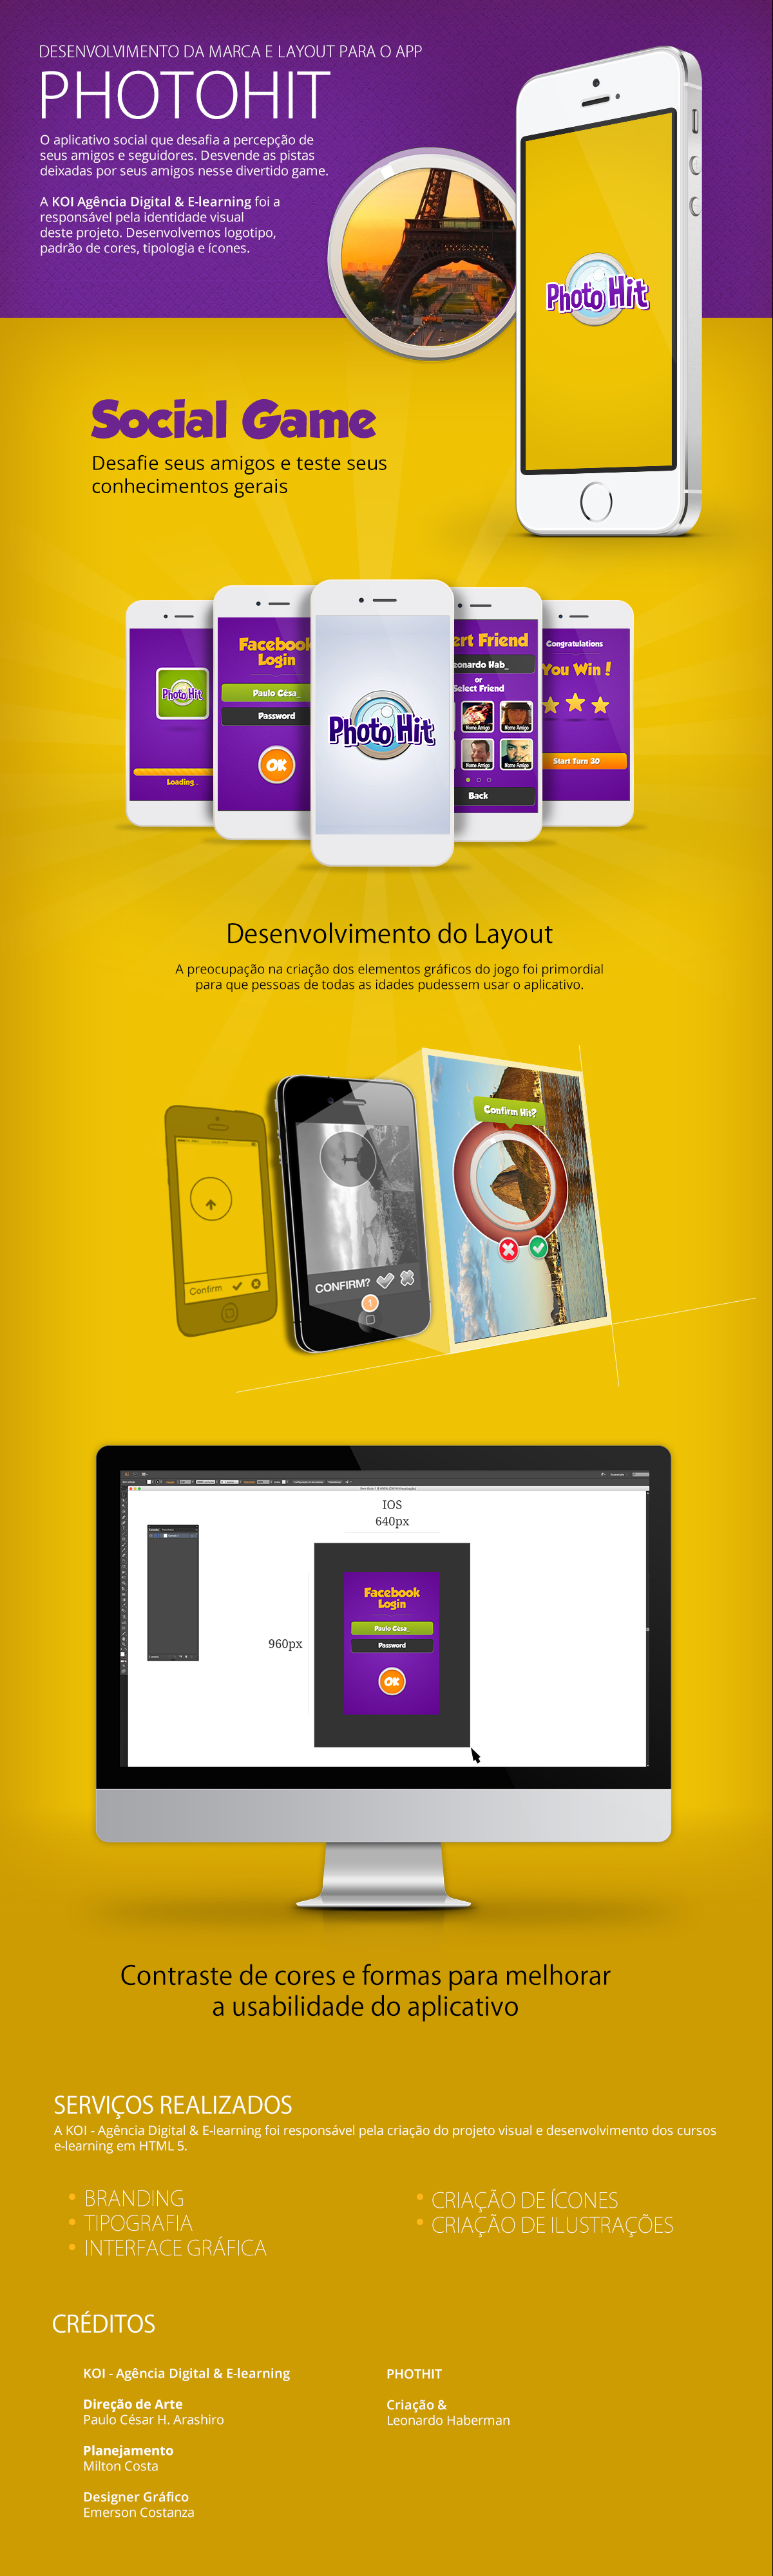 KOI - Agência Digital & E-learning: APP IOS, Android Photohit